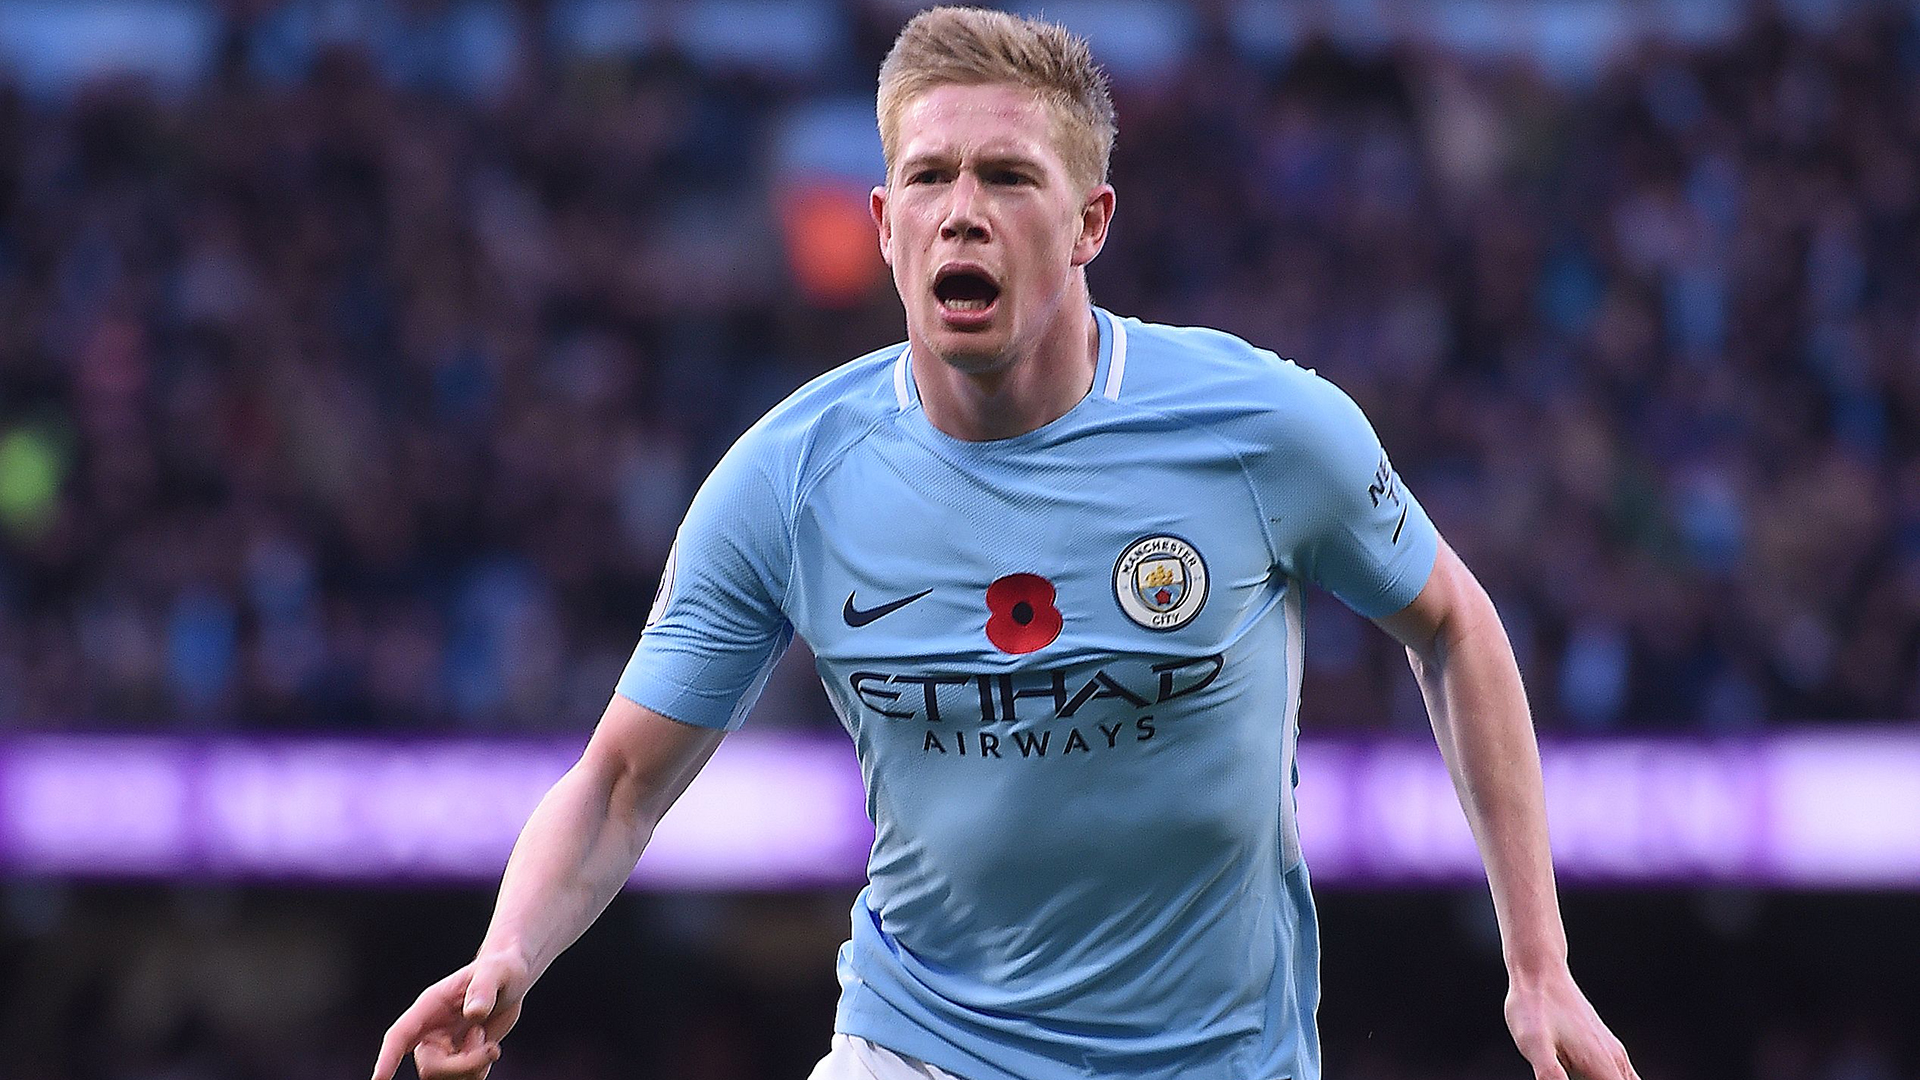 Manchester City midfielder Kevin de Bruyne celebrates a goal. (Getty Images)